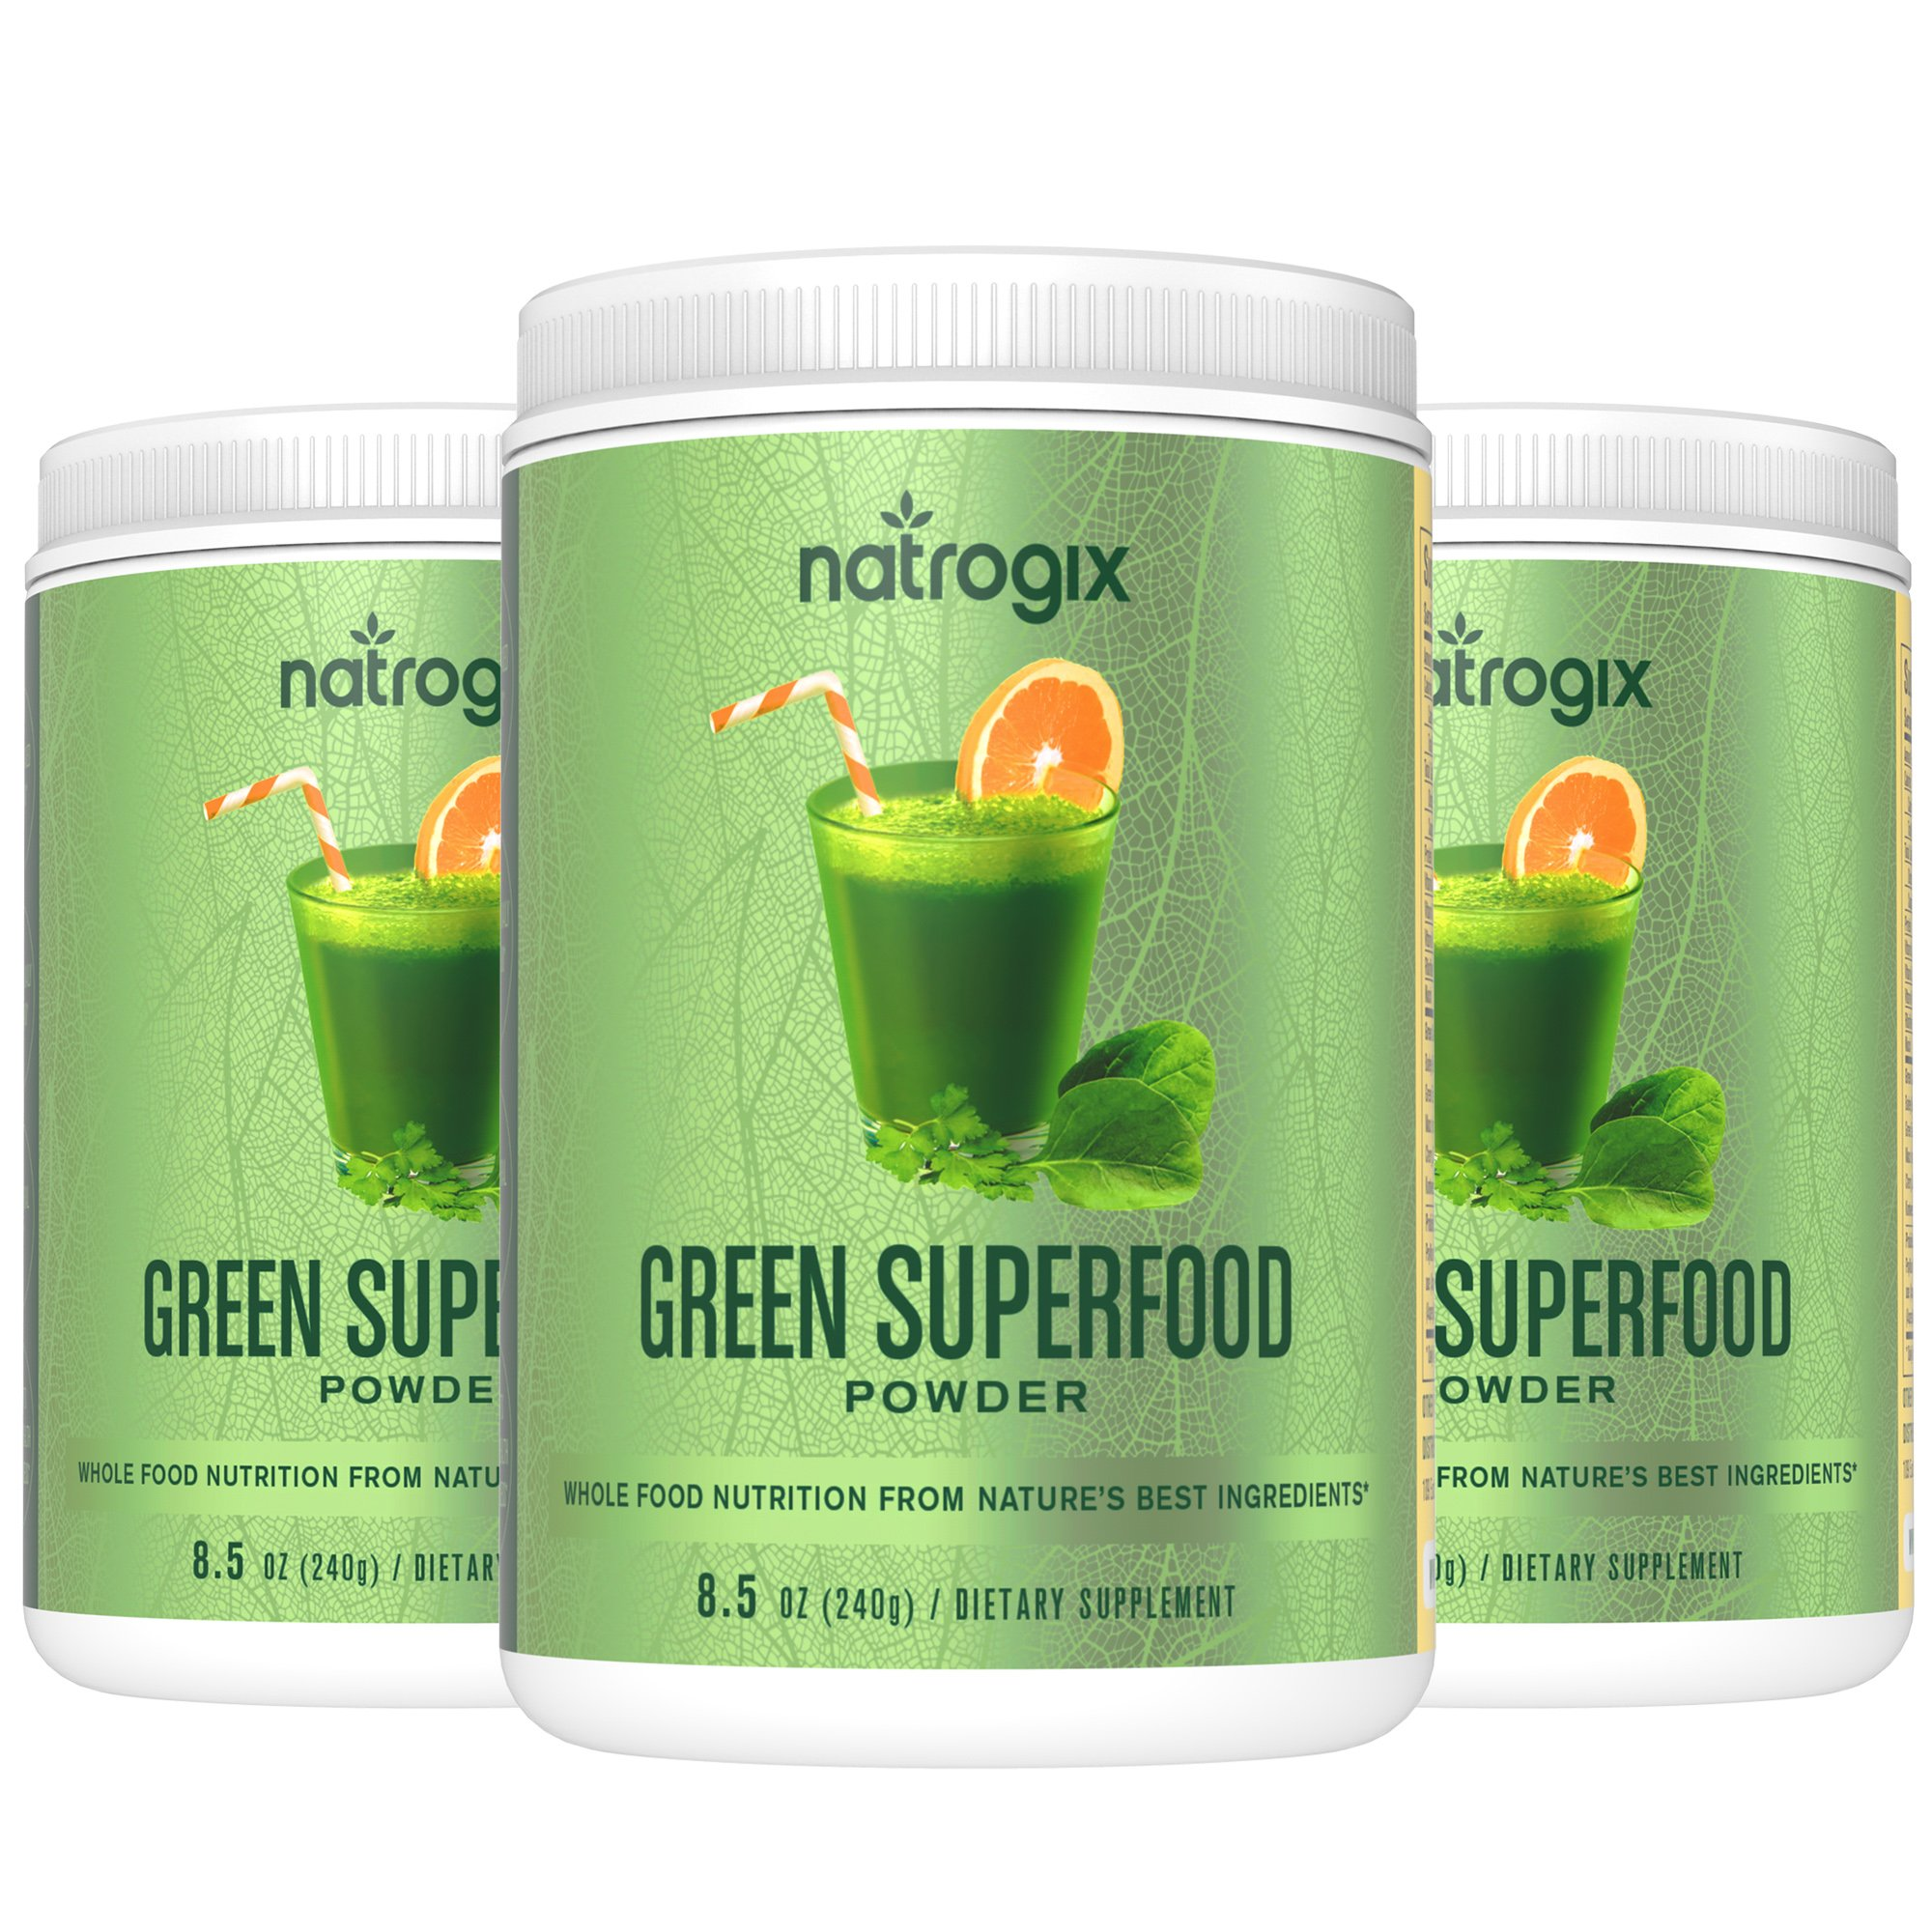 Wheat Grass Green Superfood with Fruits & Vegetables - Whole Vegan Food Nutrition, Riches in Vitamins, Minerals and Antioxidants, Organic & Gluten Free Plant-Based Protein, Made in USA (25.5 Oz).